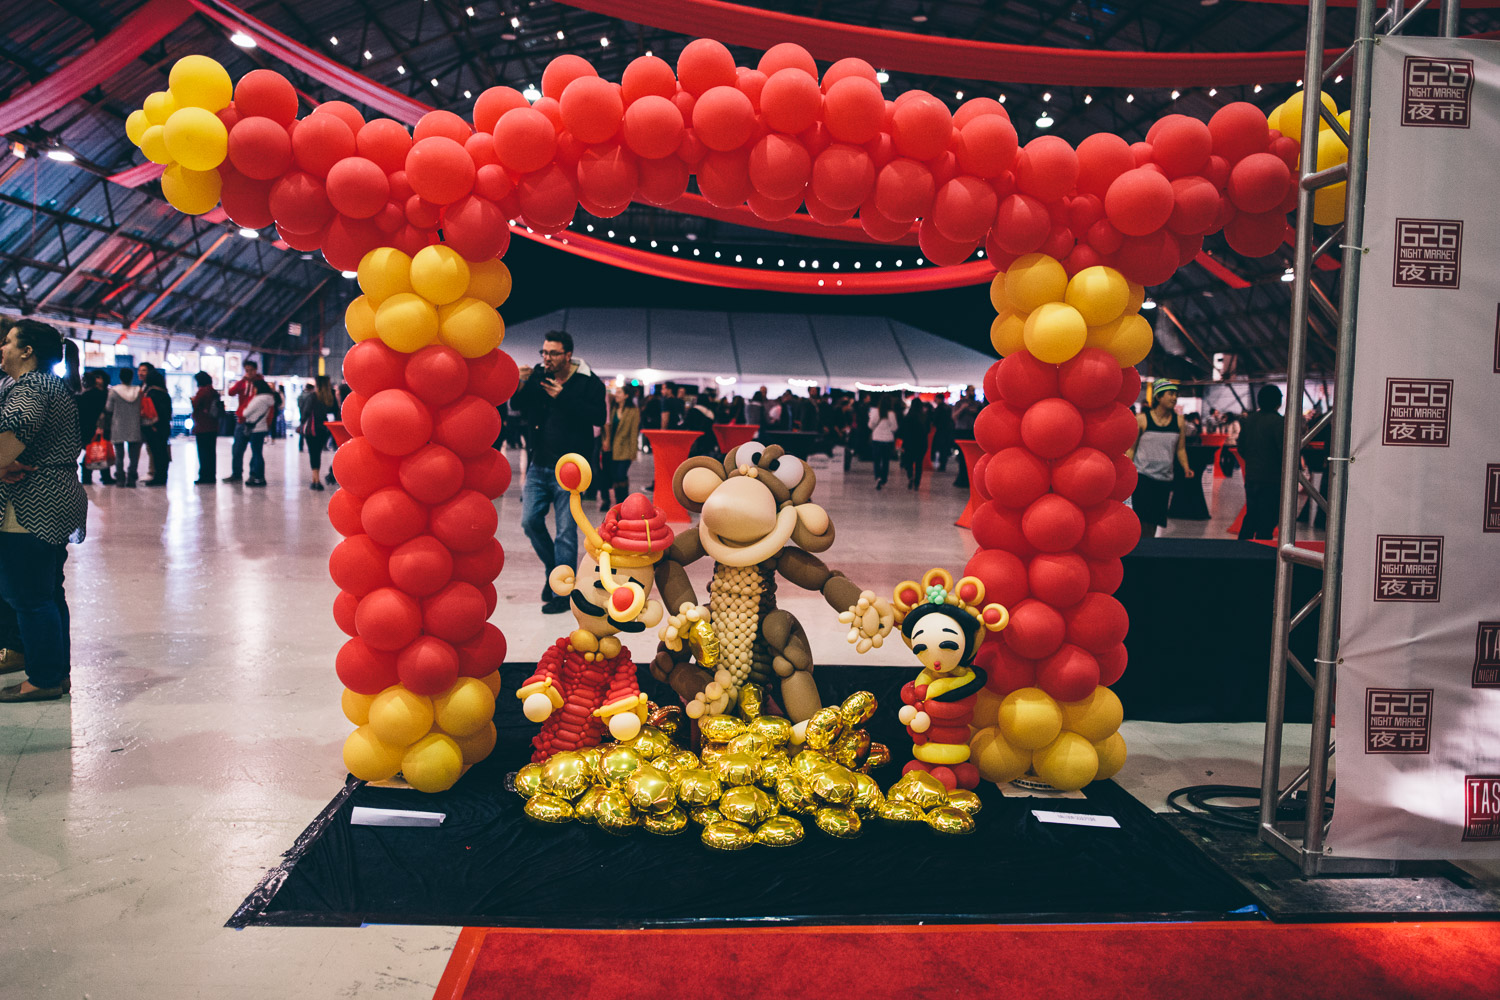 Festive decorations and a balloon monkey